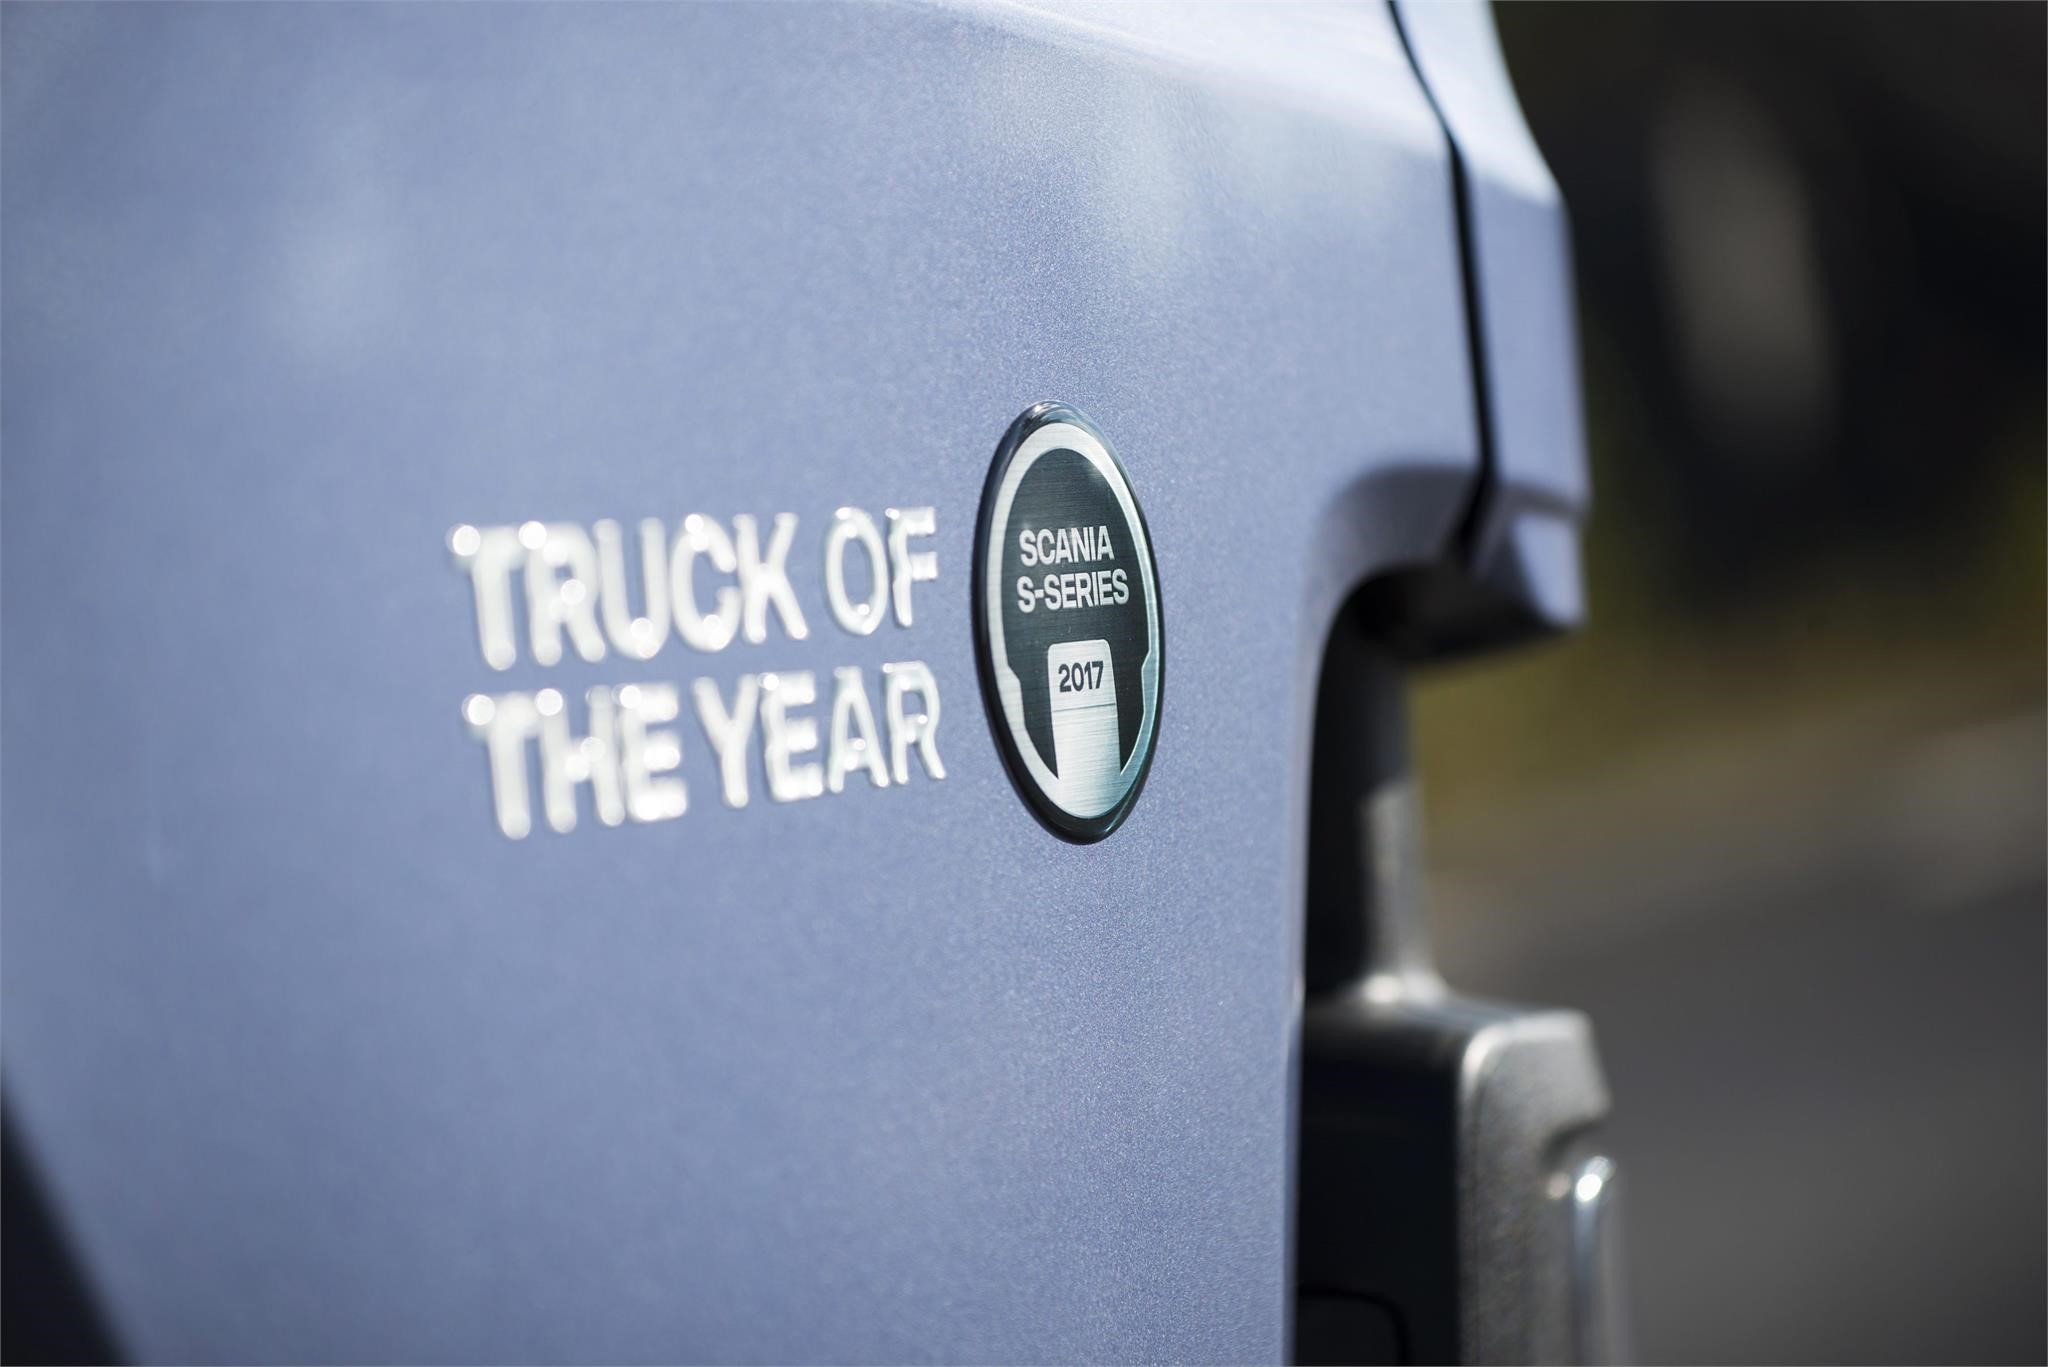 scania truck of the year